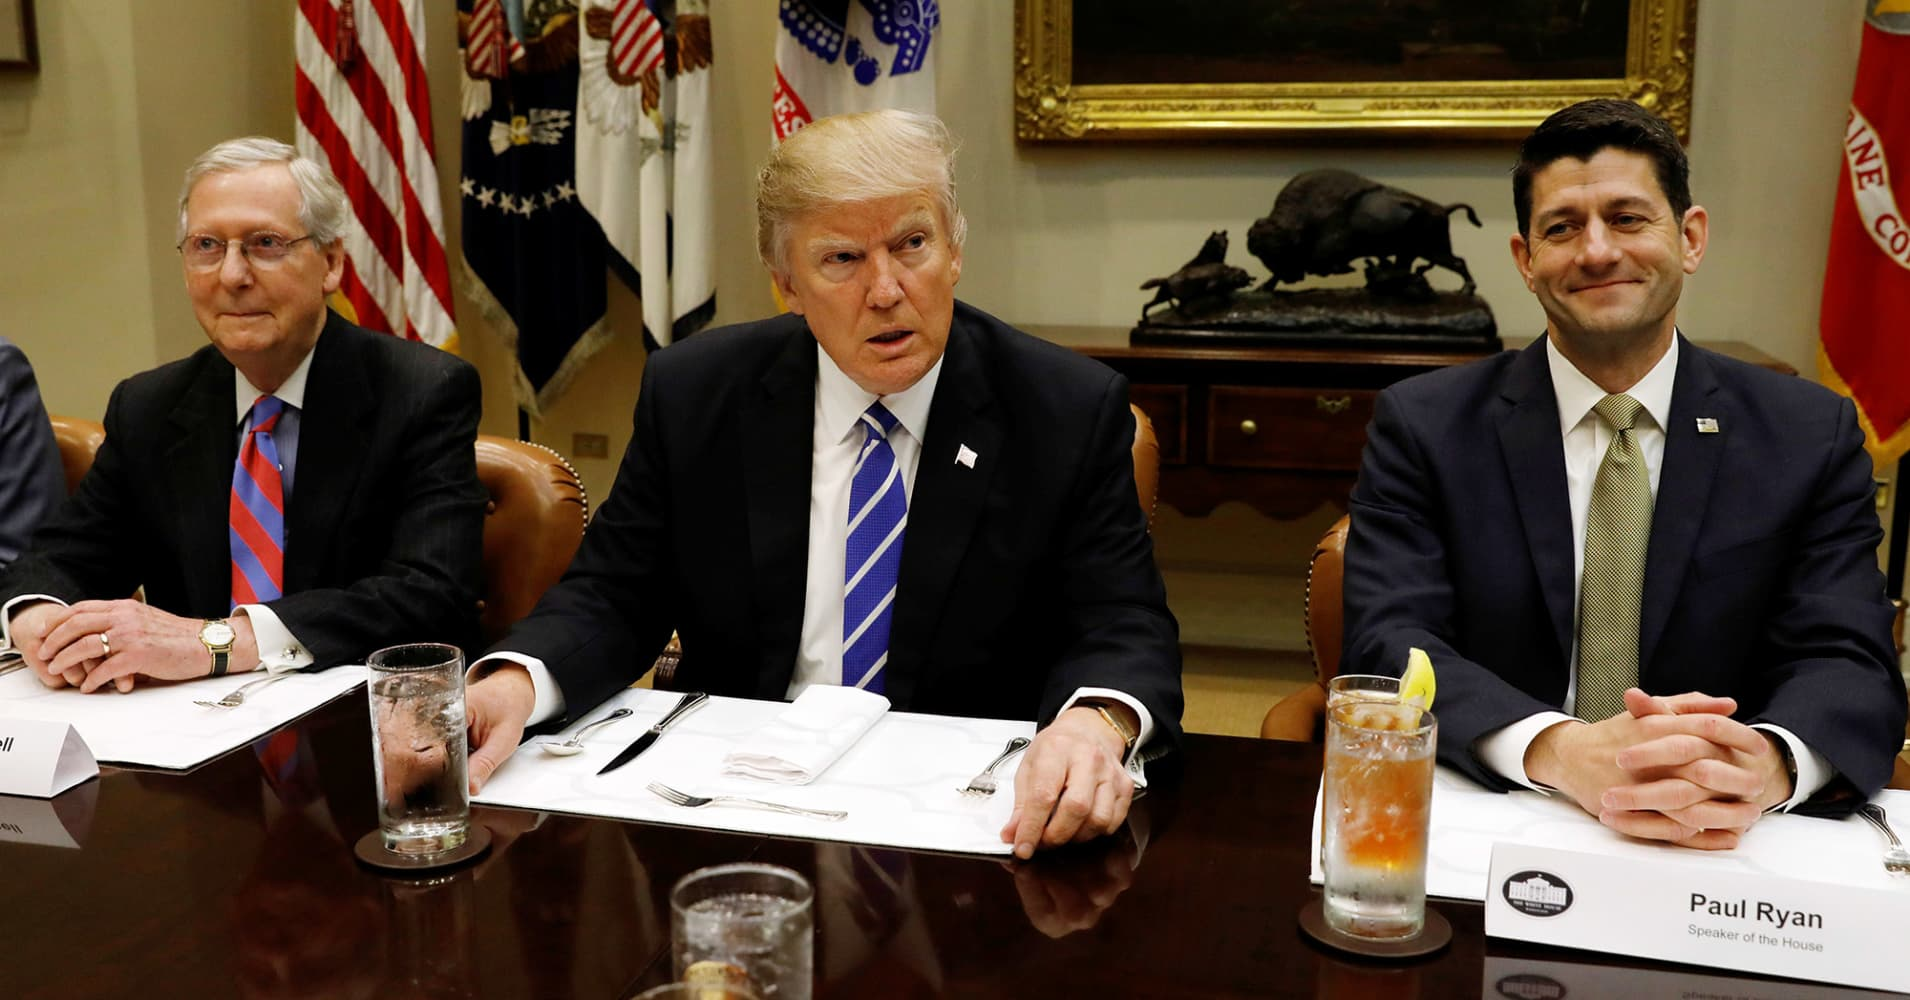 Op-Ed: It's stand and deliver time for Trump and Congress on deregulation